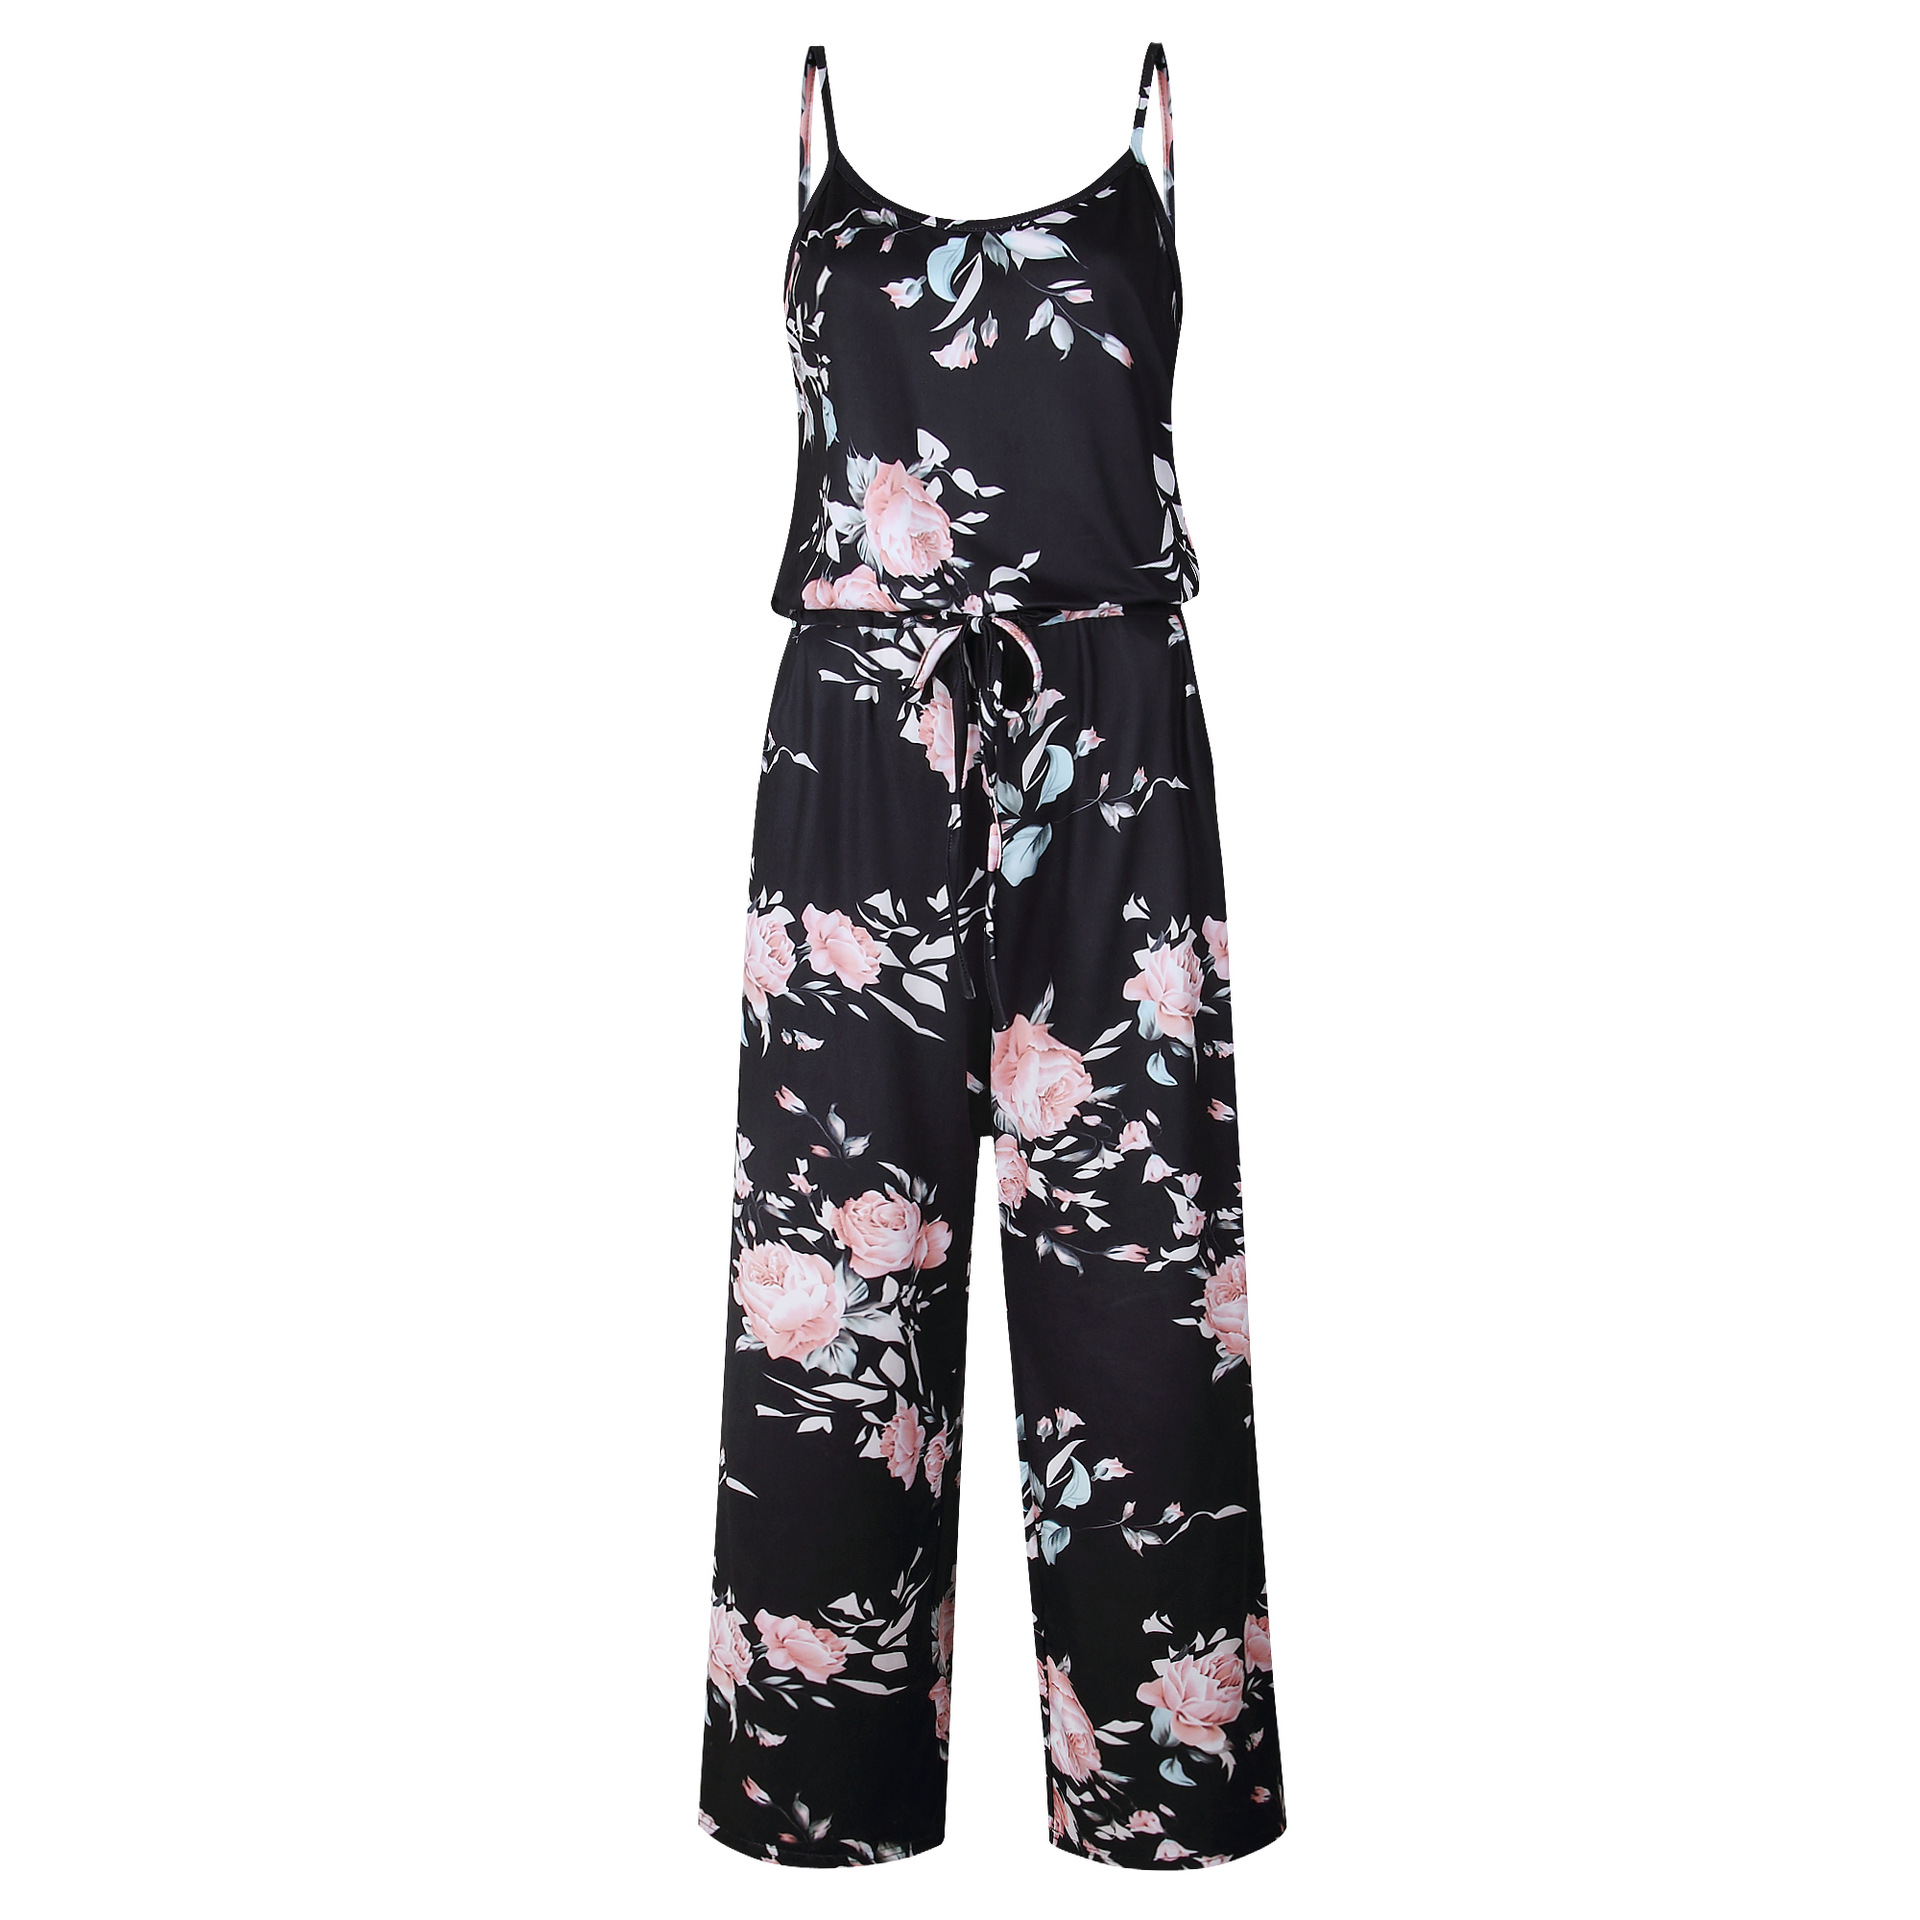 Spaghetti Strap Jumpsuit Women 2018 Summer Long Pants Floral Print Rompers Beach Casual Jumpsuits Sleeveless Sashes Playsuits 27